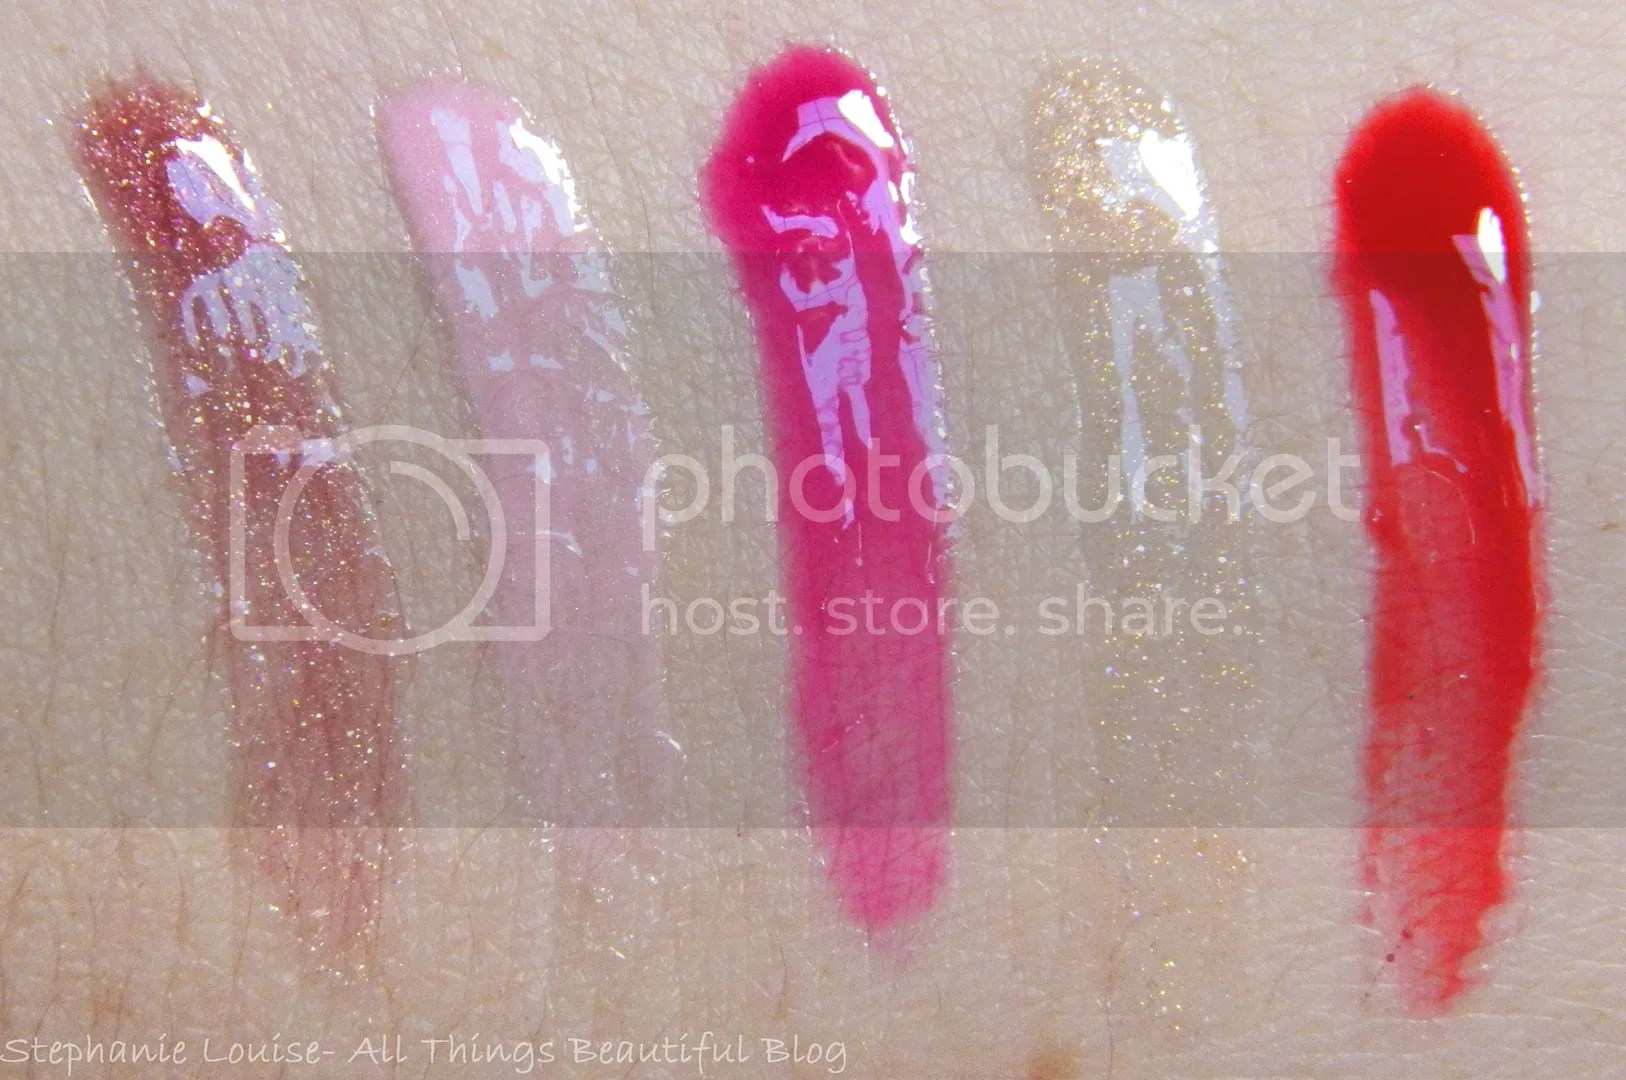 Smashbox Wondervision Holiday Lip Gloss Set Swatches & Review